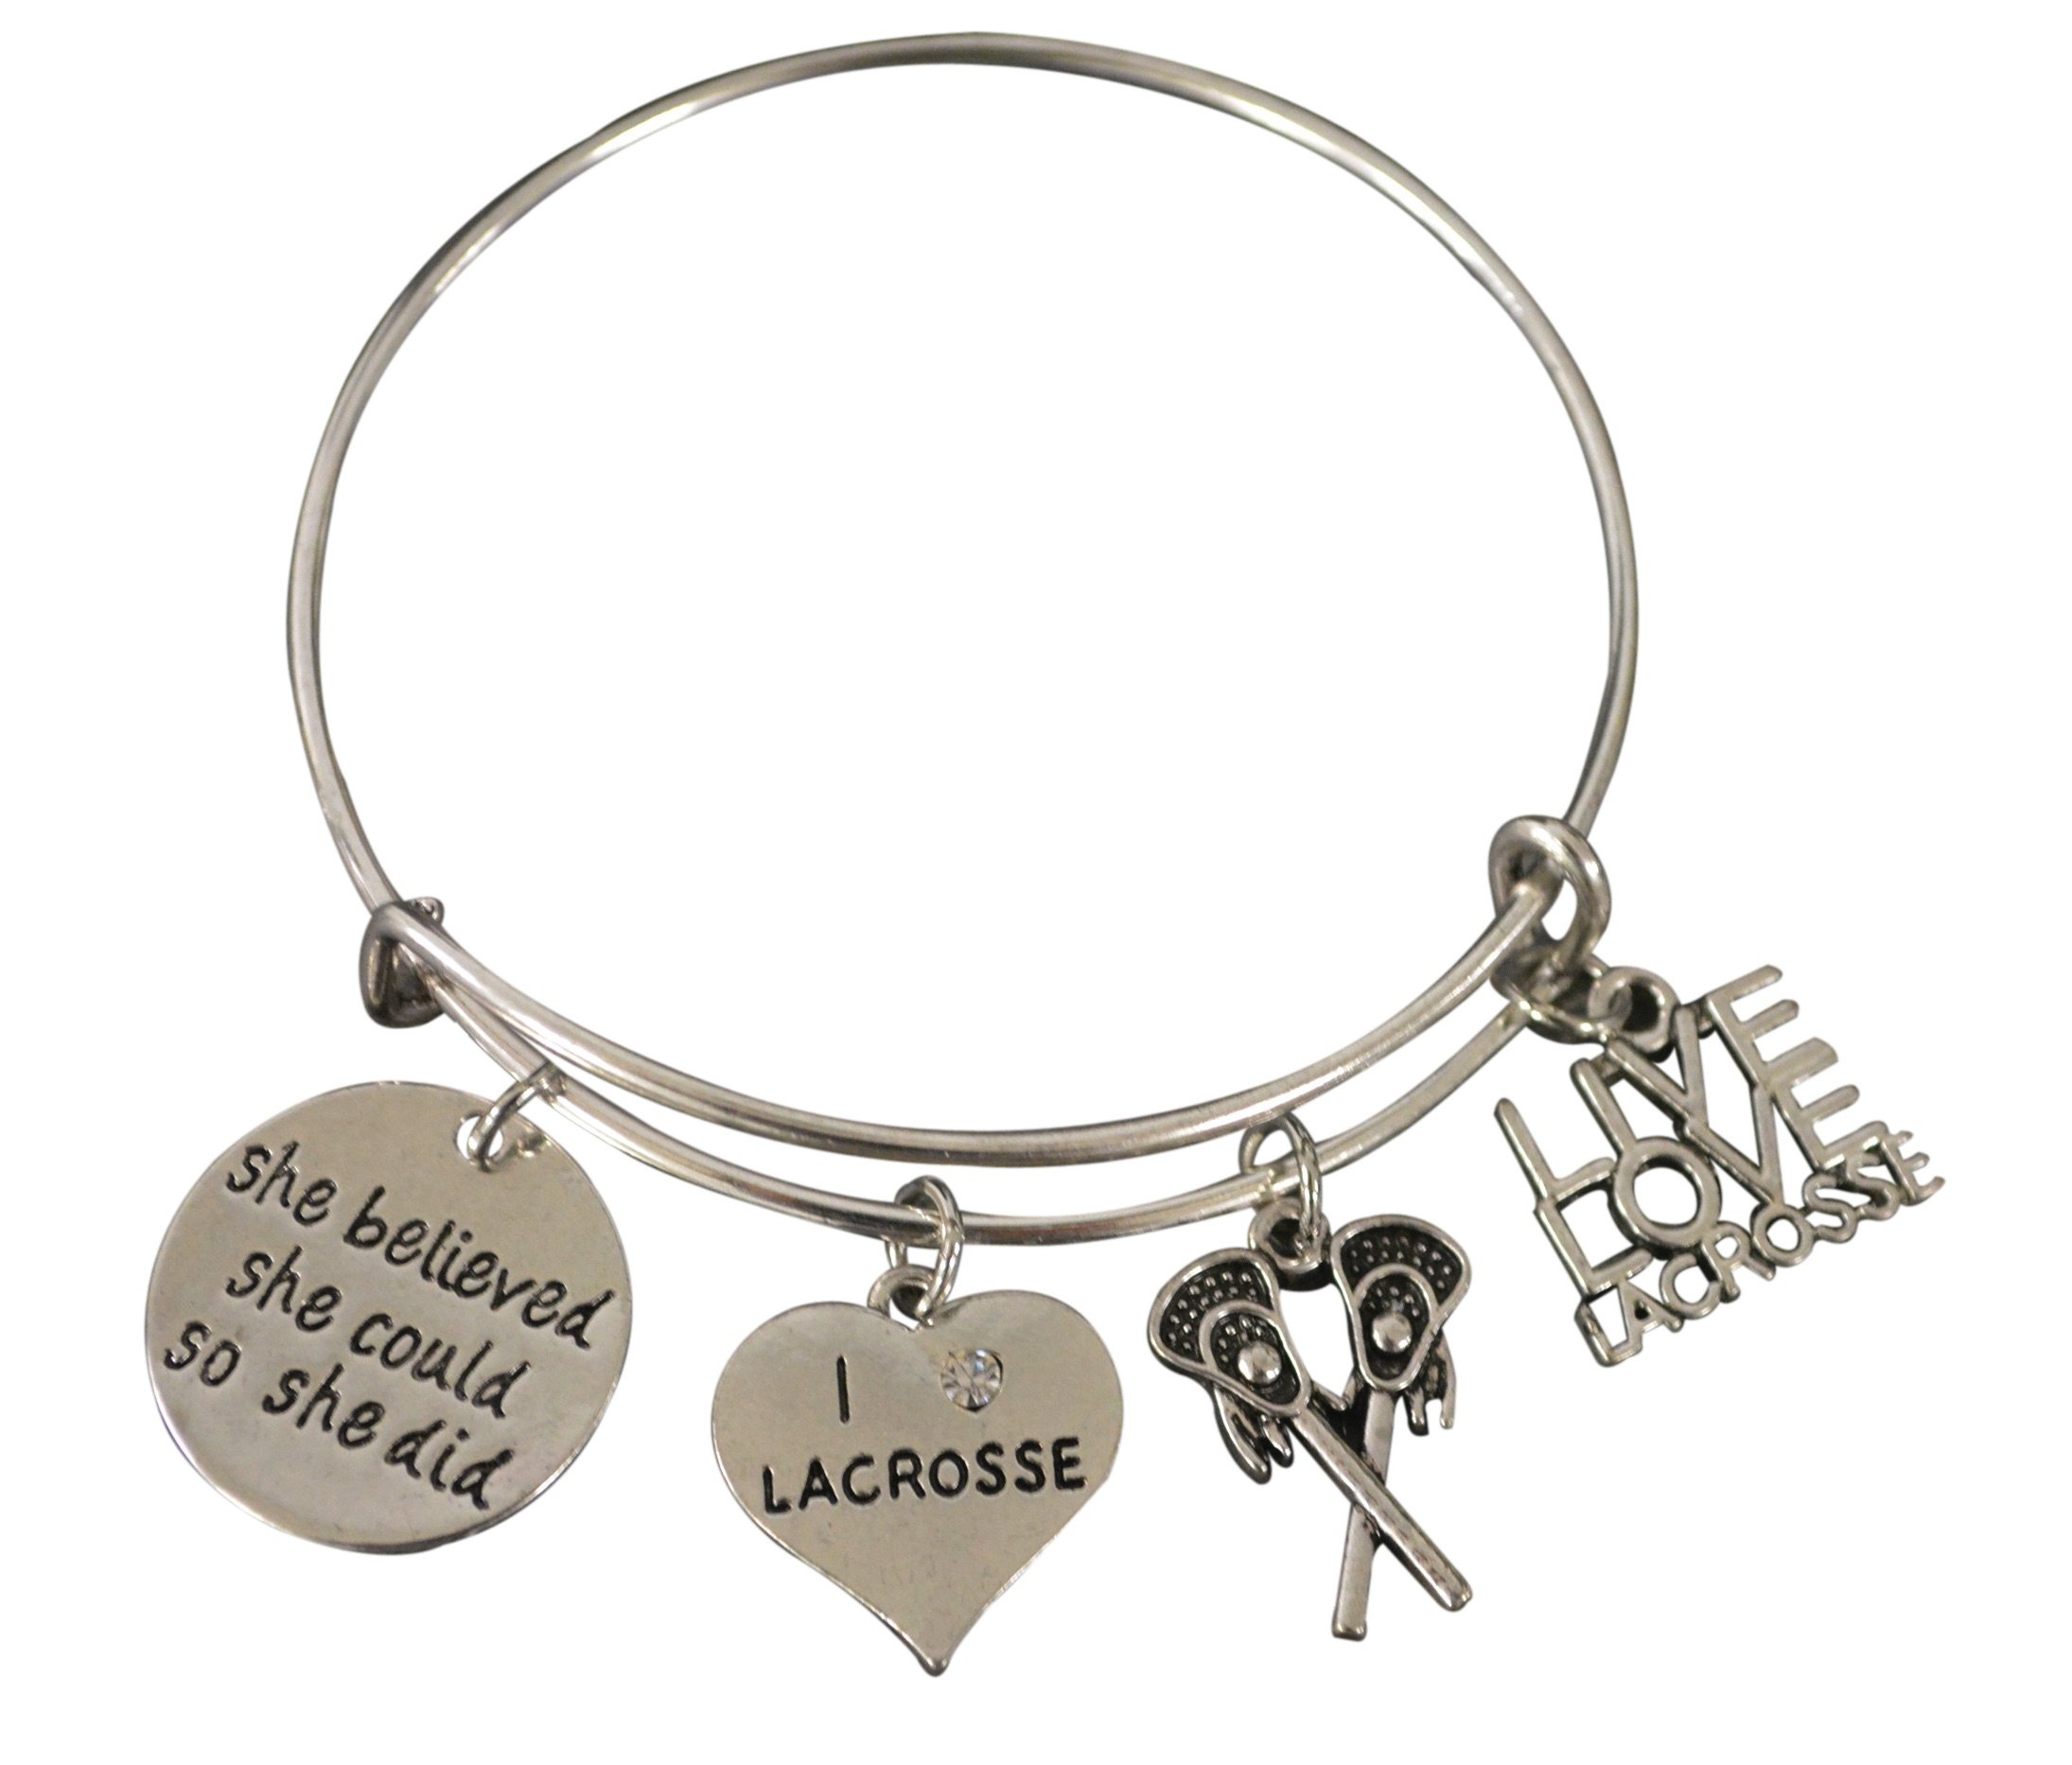 Infinity Collection Lacrosse Charm Bangle Bracelet, Girls Lacrosse She Believed She Could So She Did Jewelry Lacrosse Gifts For Female Lacrosse Players